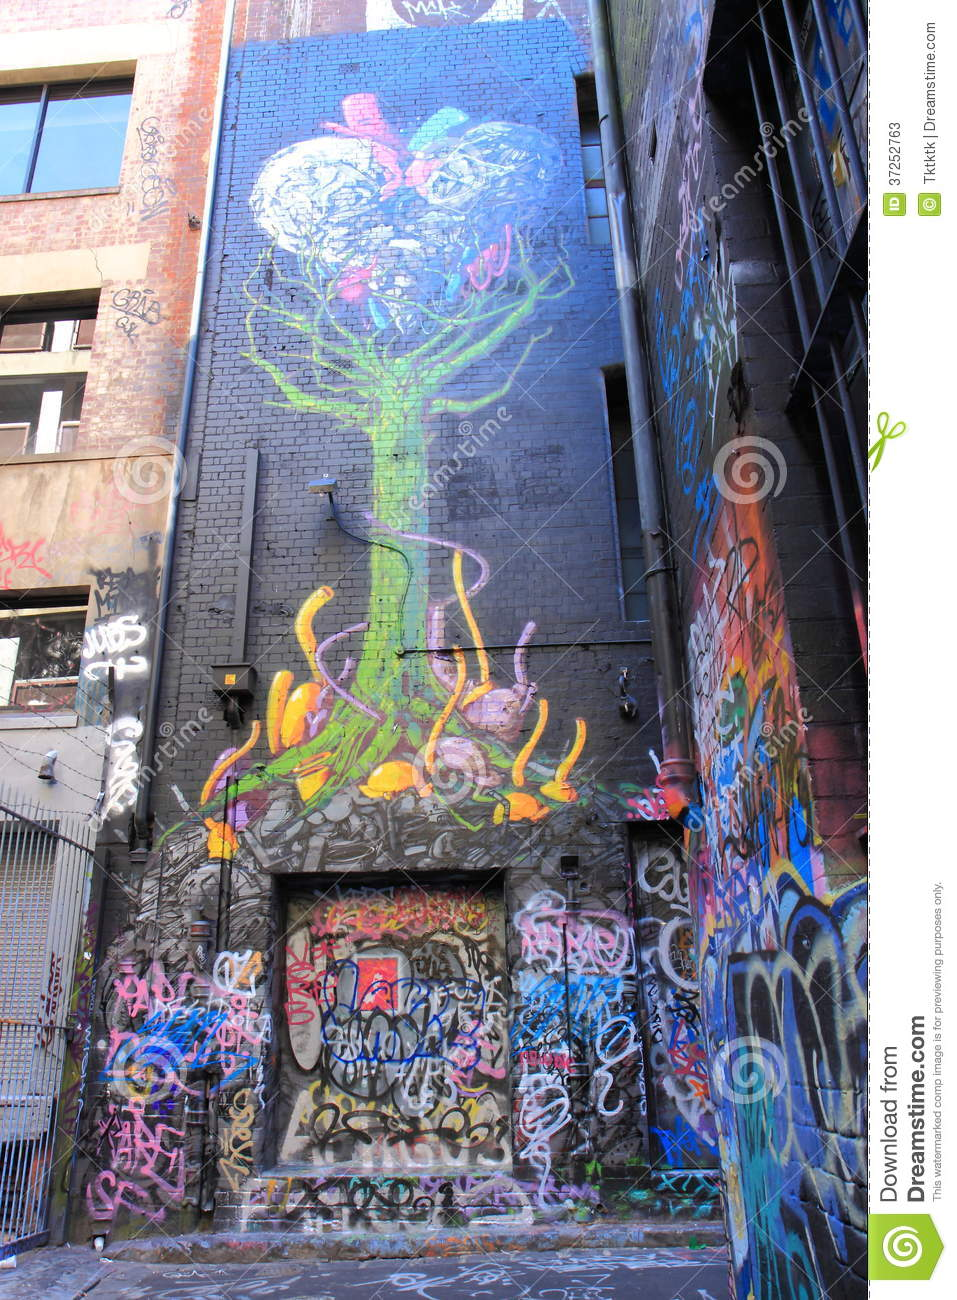 Graffiti art for sale melbourne - Art Famous Graffiti Hoiser Lane Melbourne